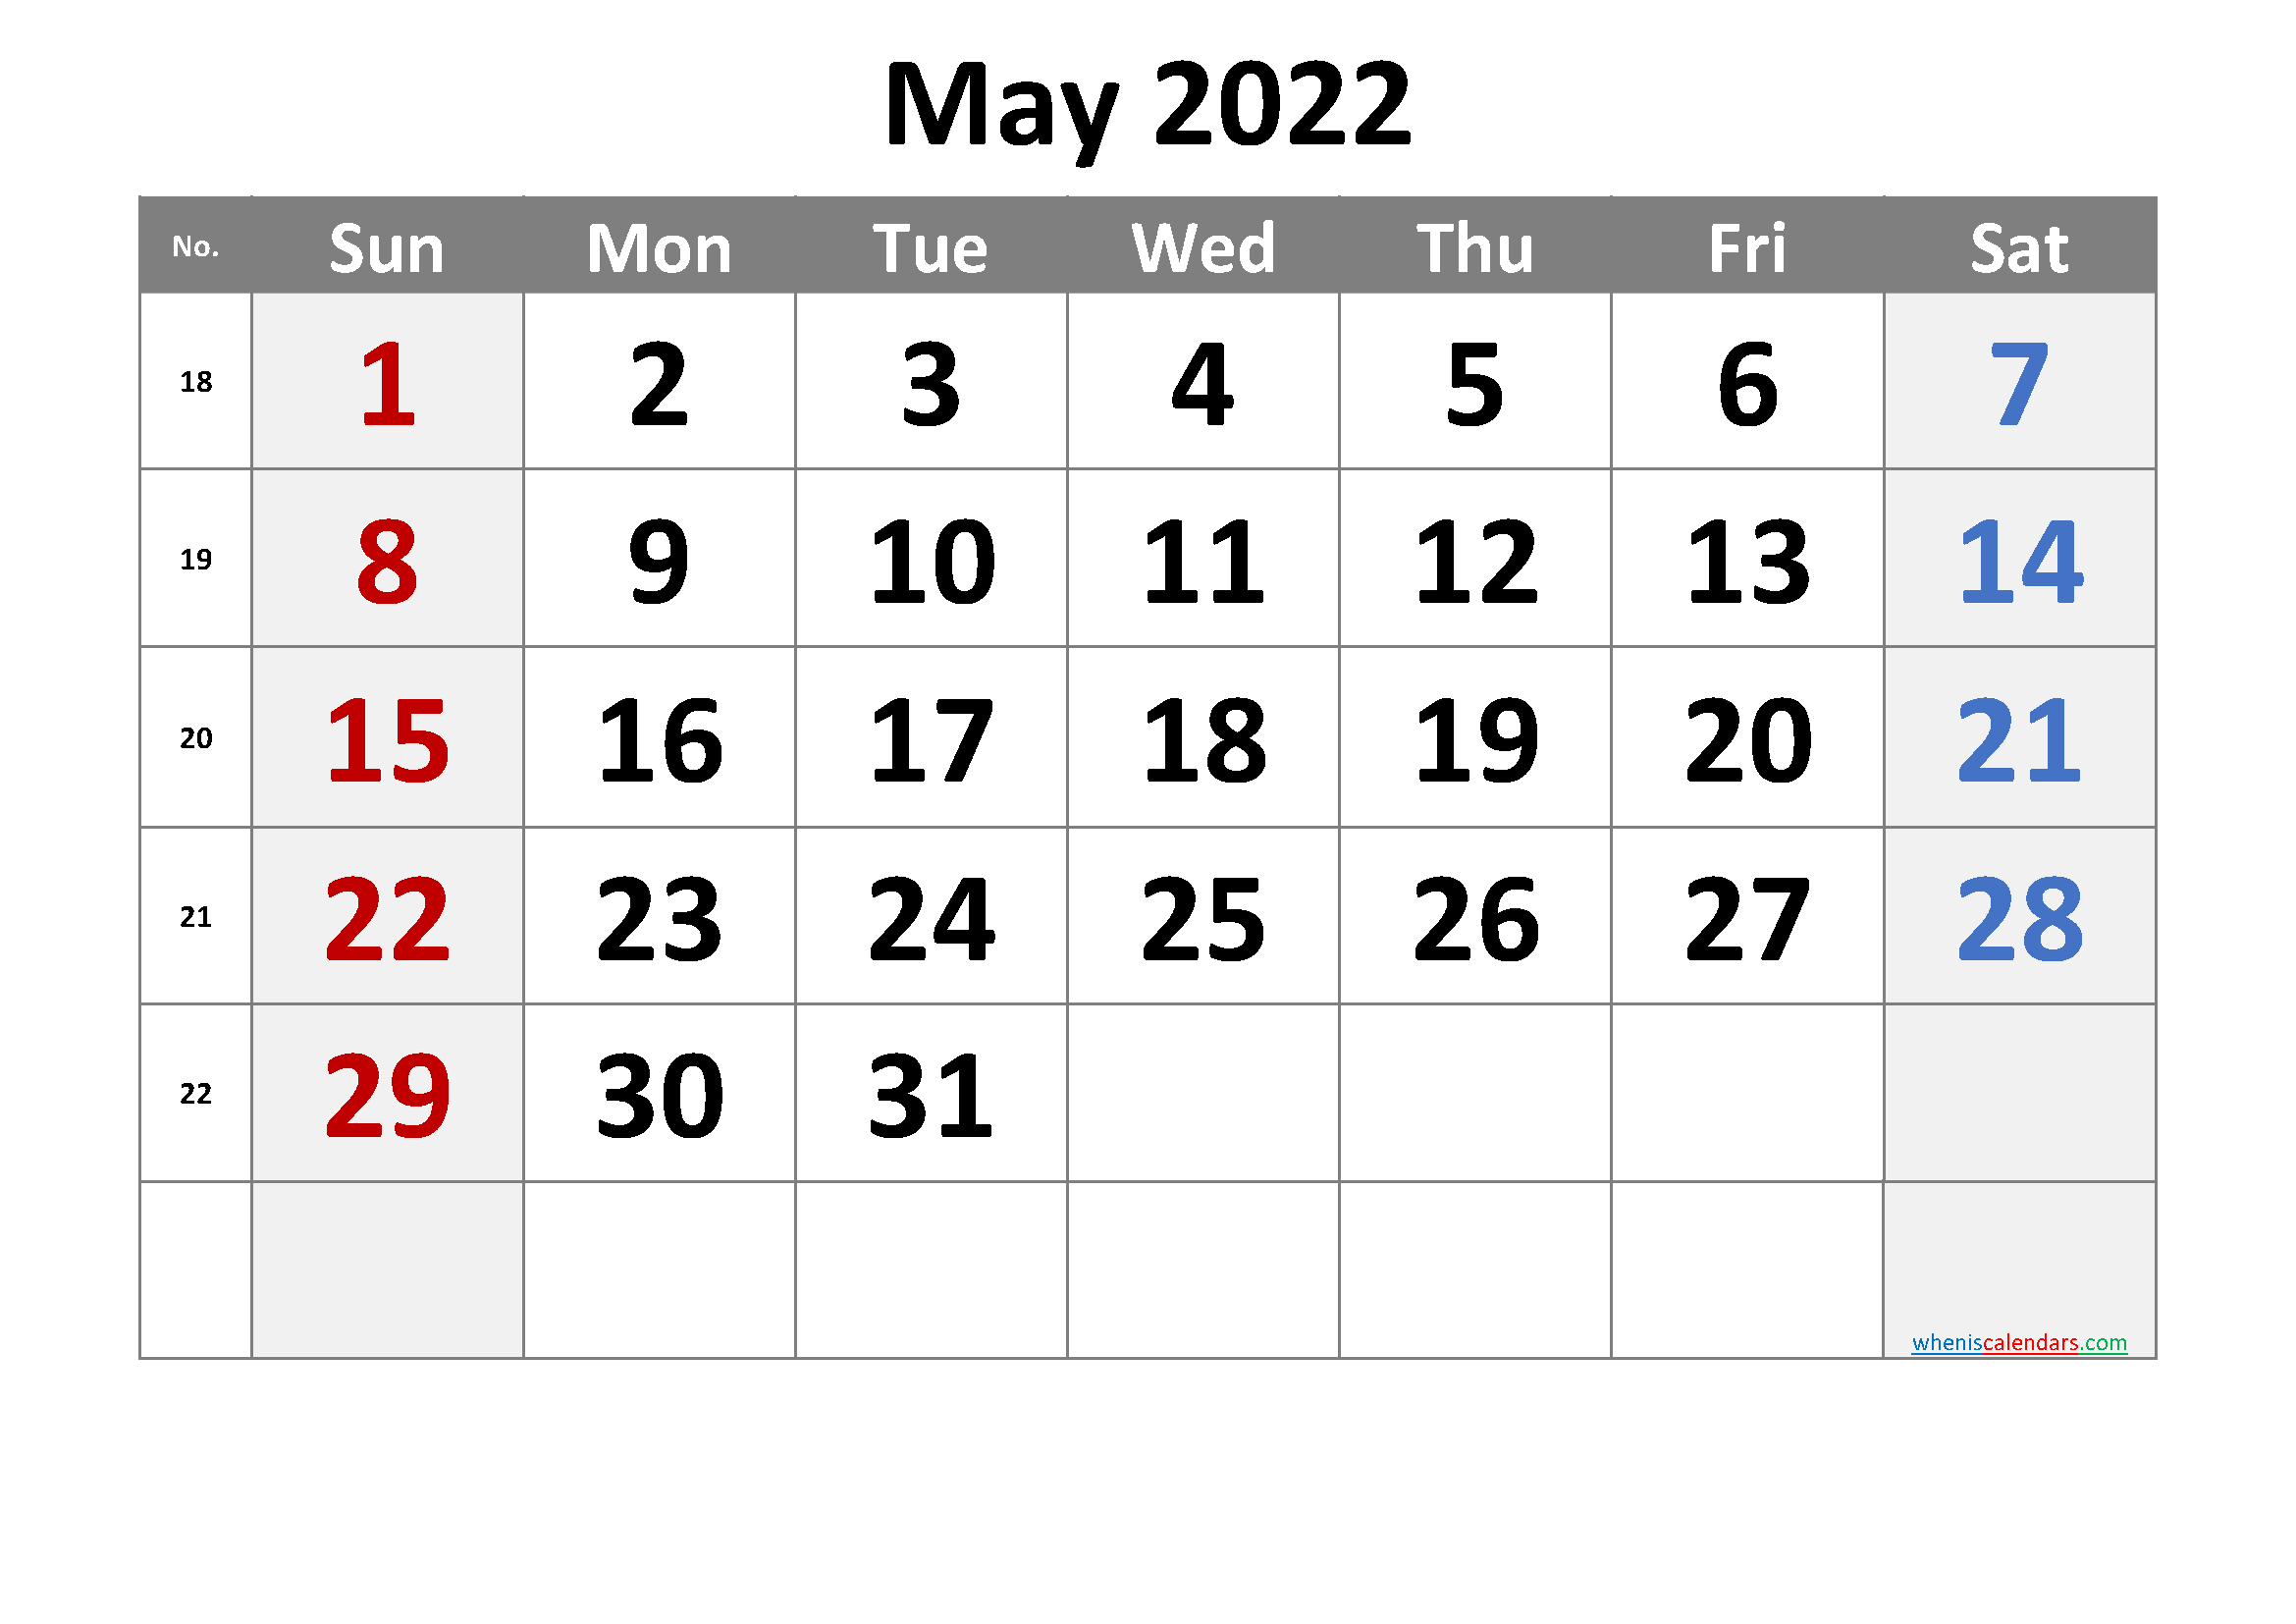 May 2022 Printable Calendar with Week Numbers